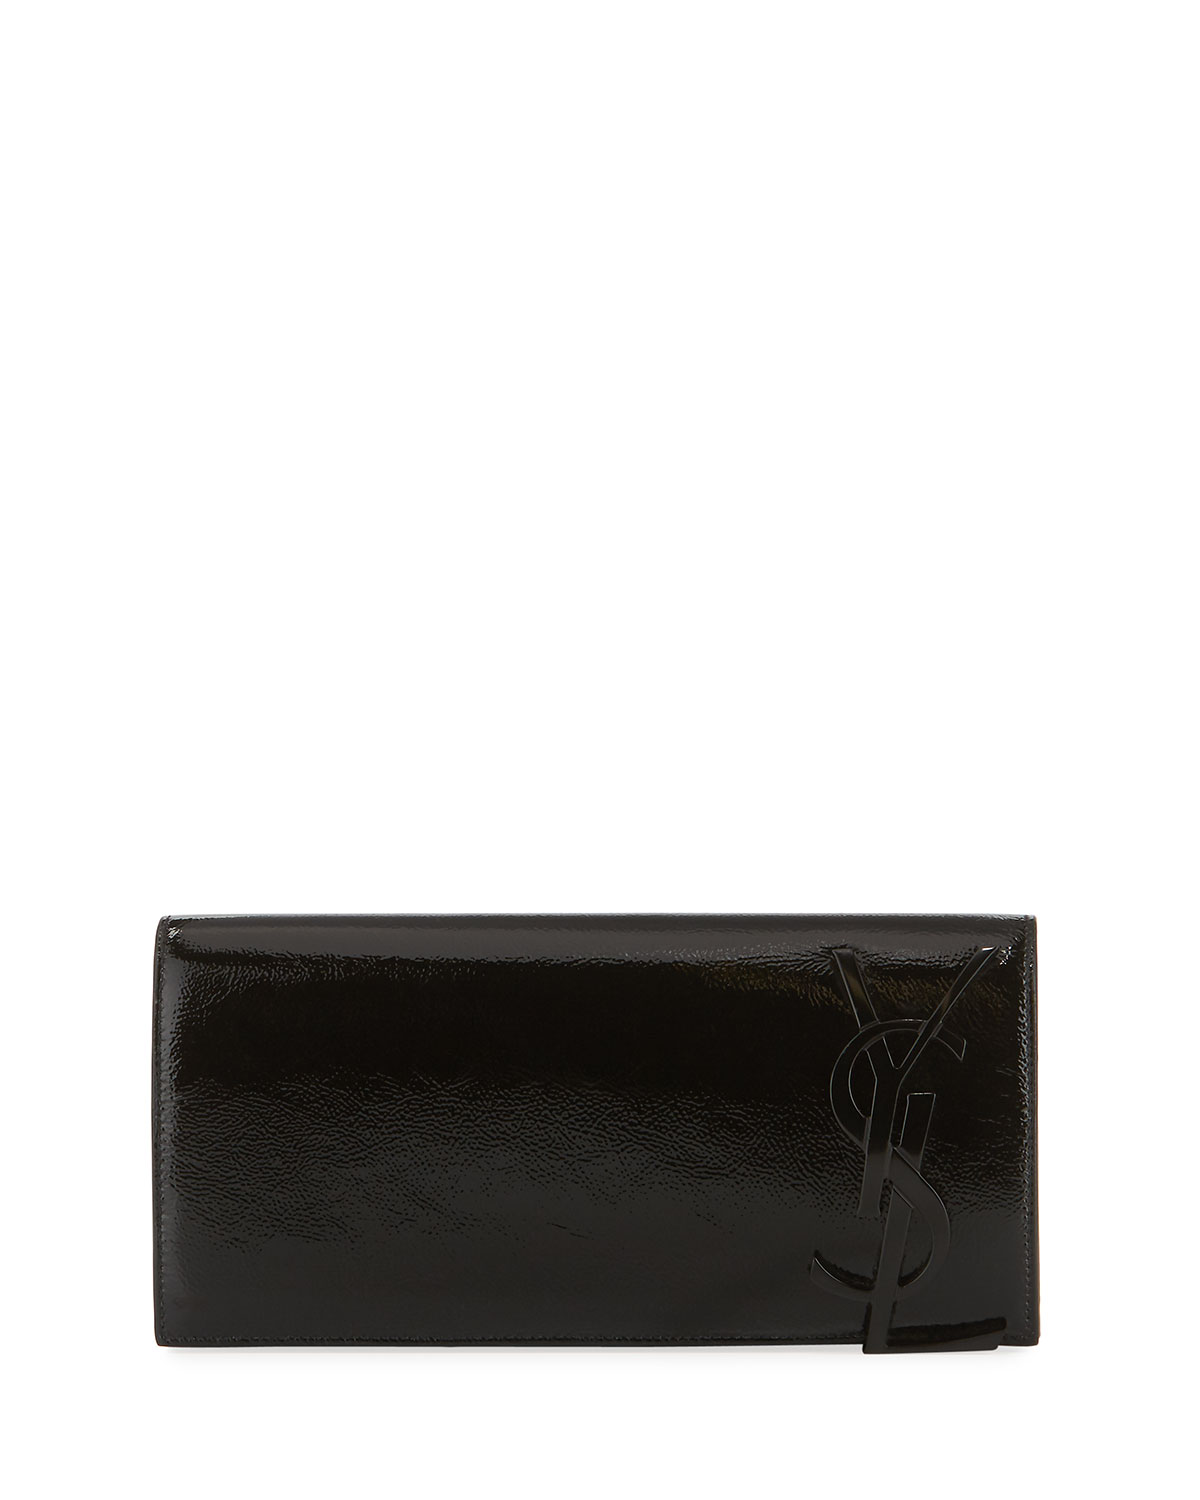 0c3e5c70f0 Saint Laurent Smoking Monogram Patent Leather Clutch Bag